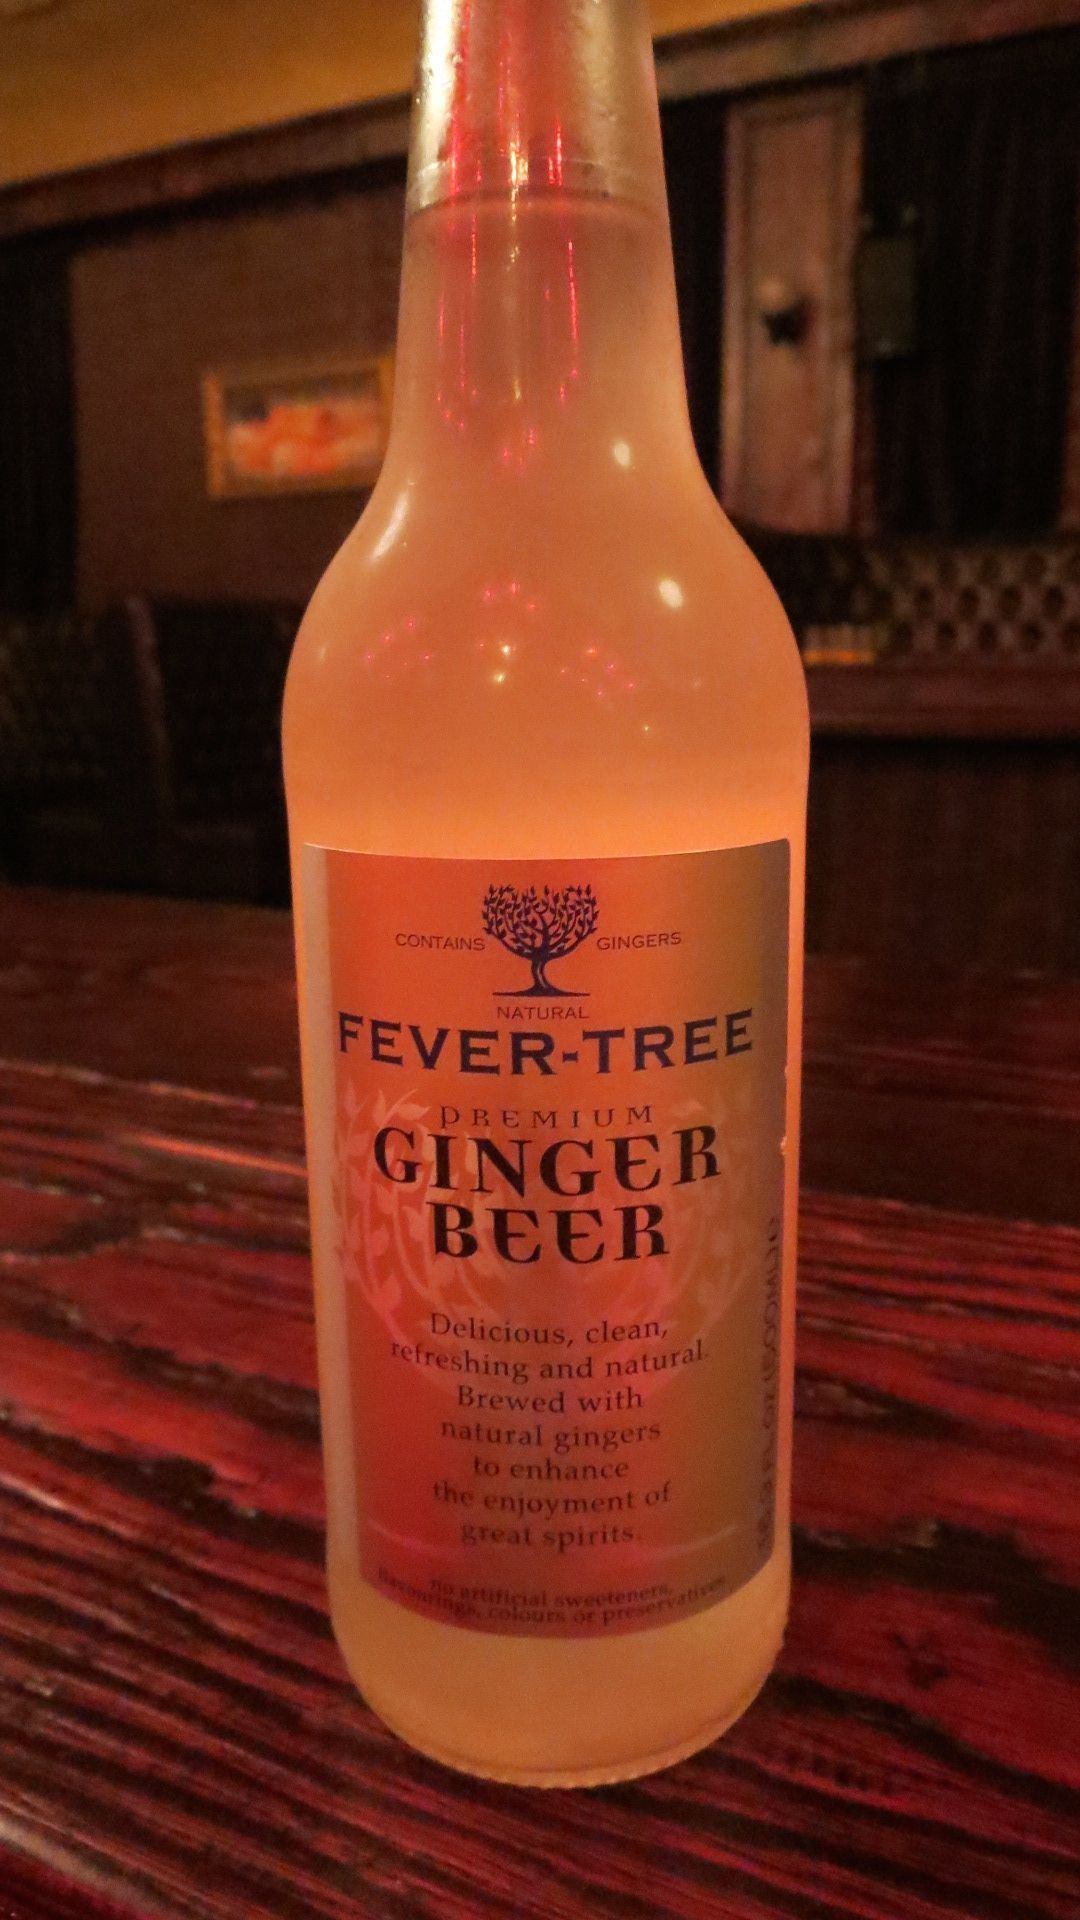 Fever Tree Ginger Beer, the best. Not over the top sweet